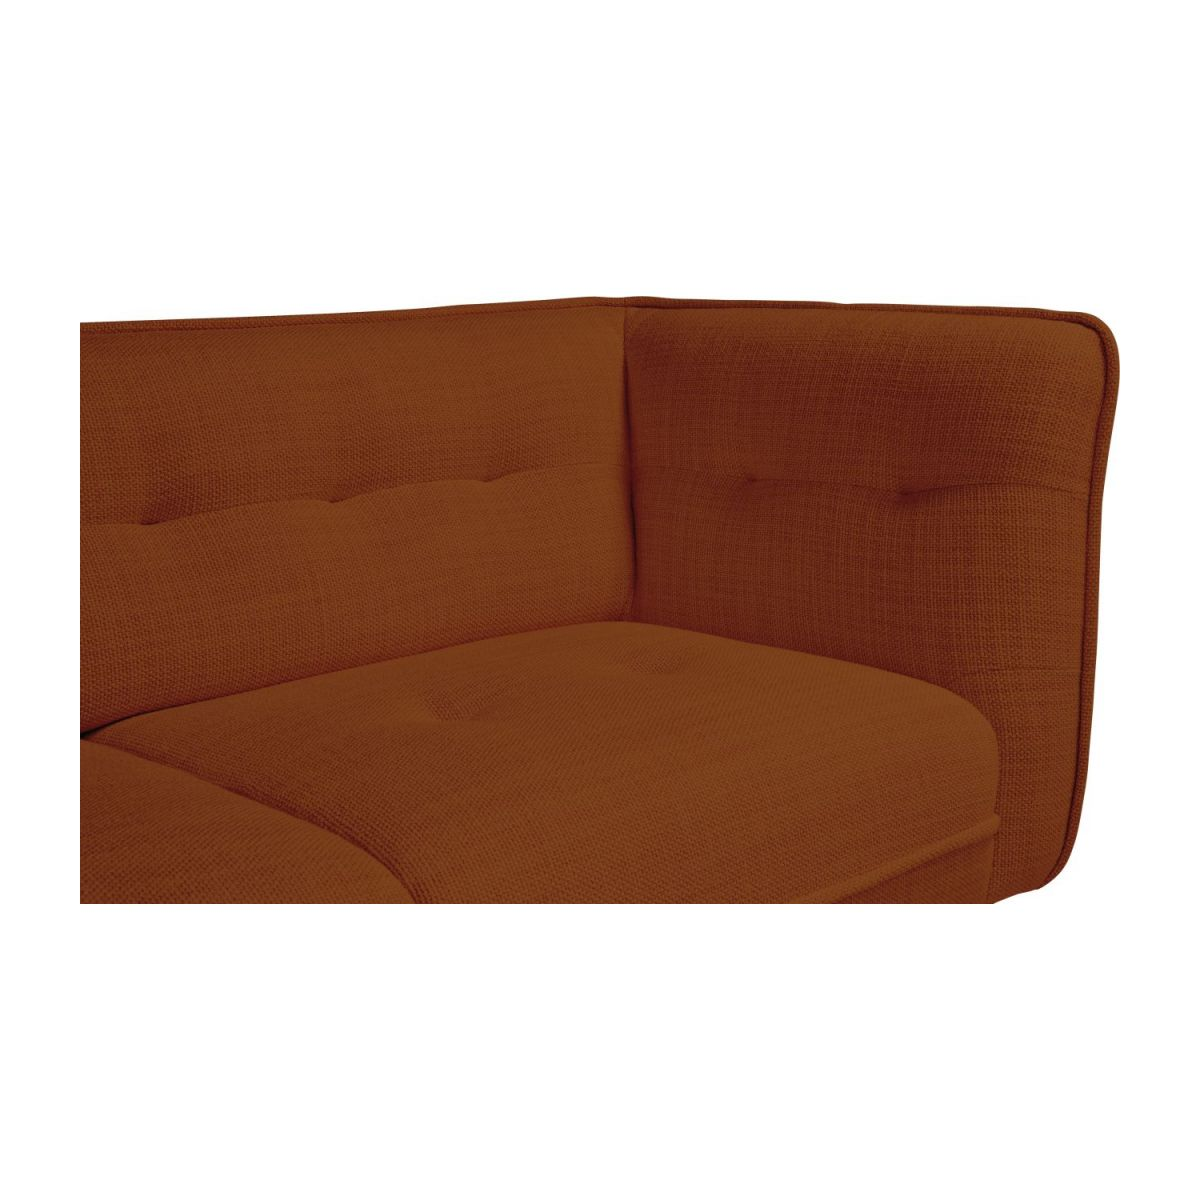 2 seater sofa in Fasoli fabric, warm red rock and dark legs n°5